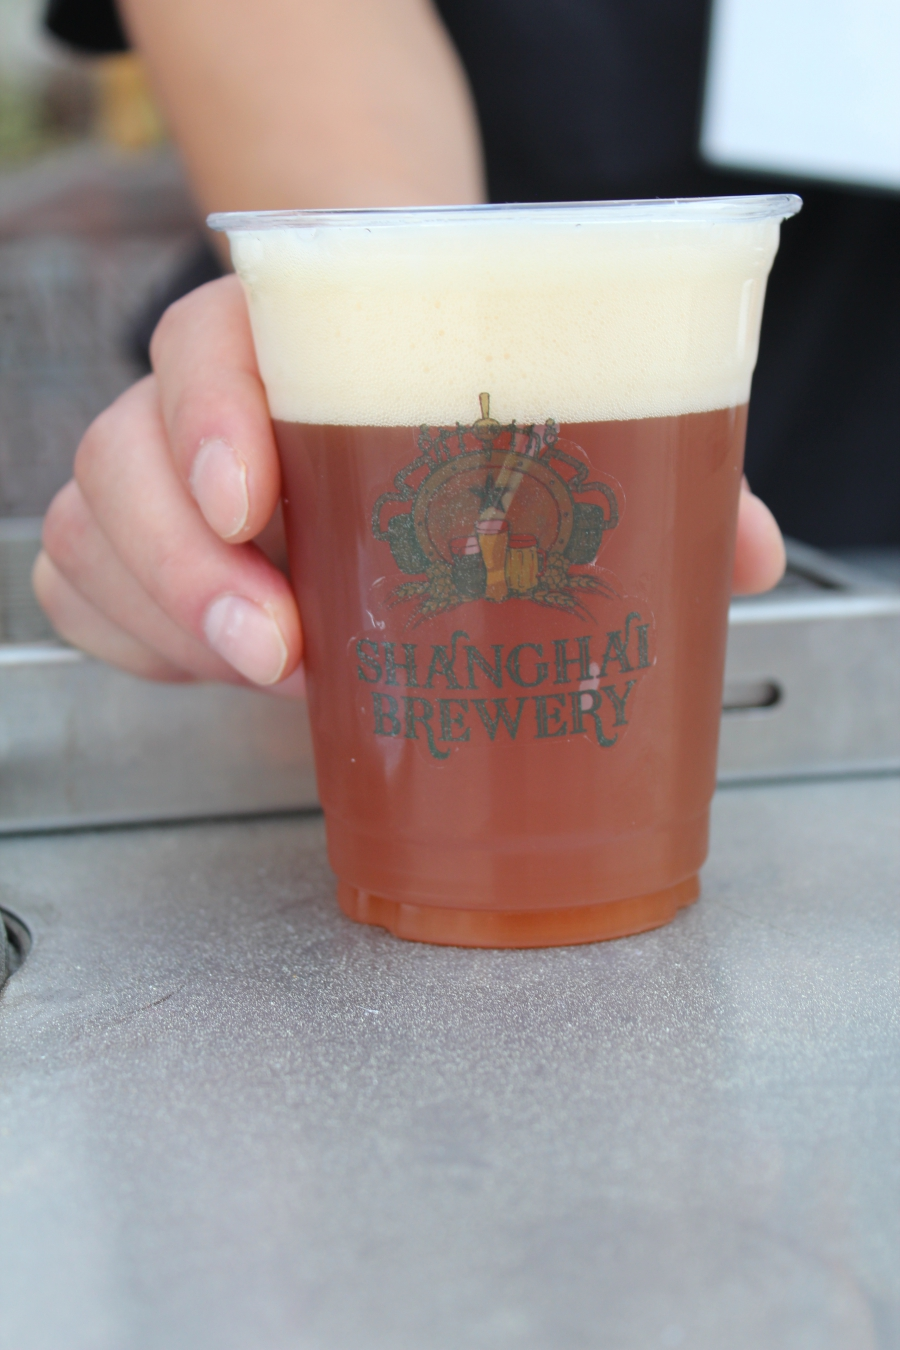 A local craft brew from Shanghai Brewery.